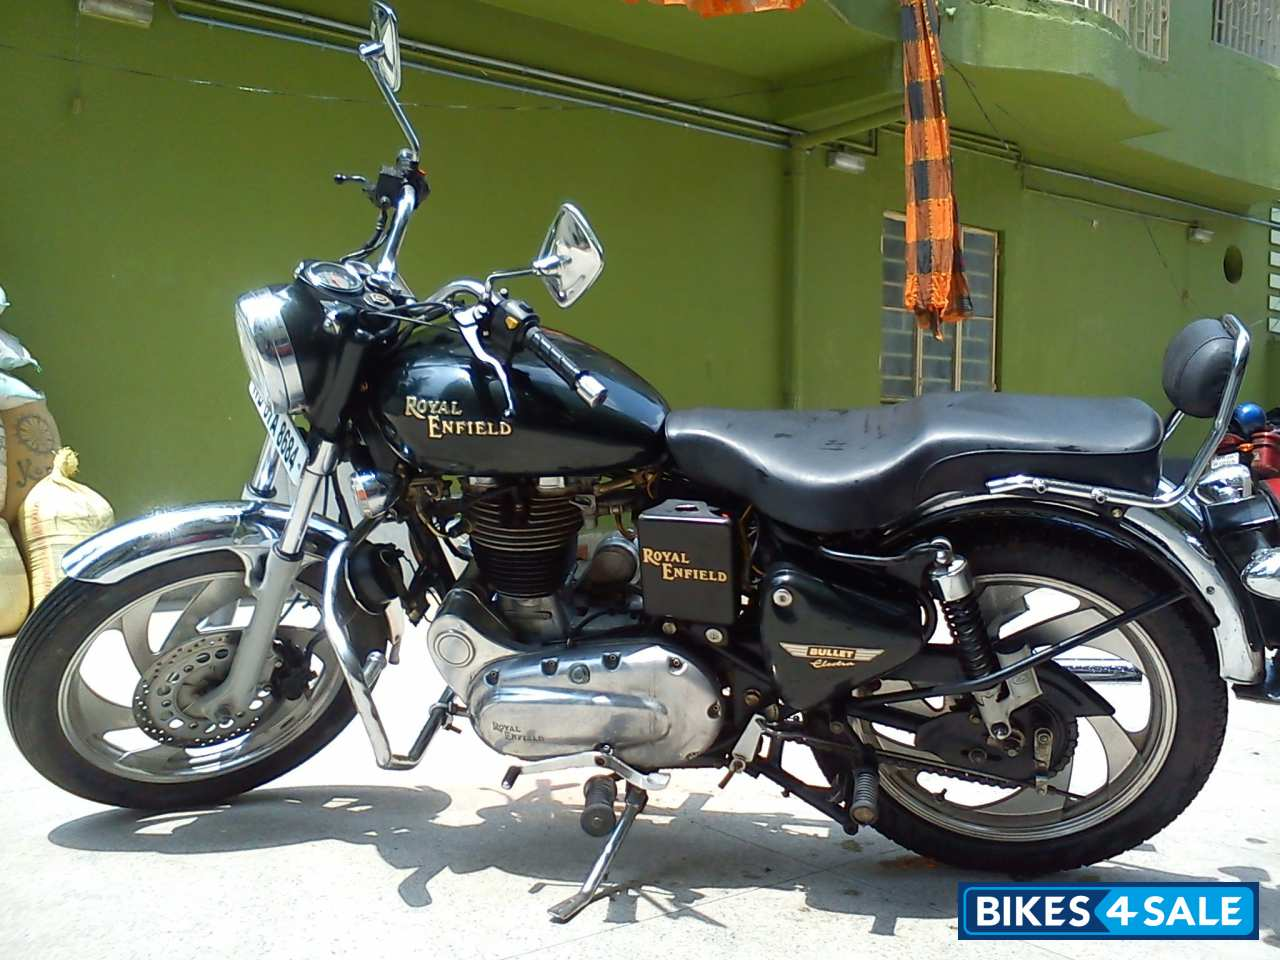 Royal Enfield Bike Kolkata West - 220.6KB